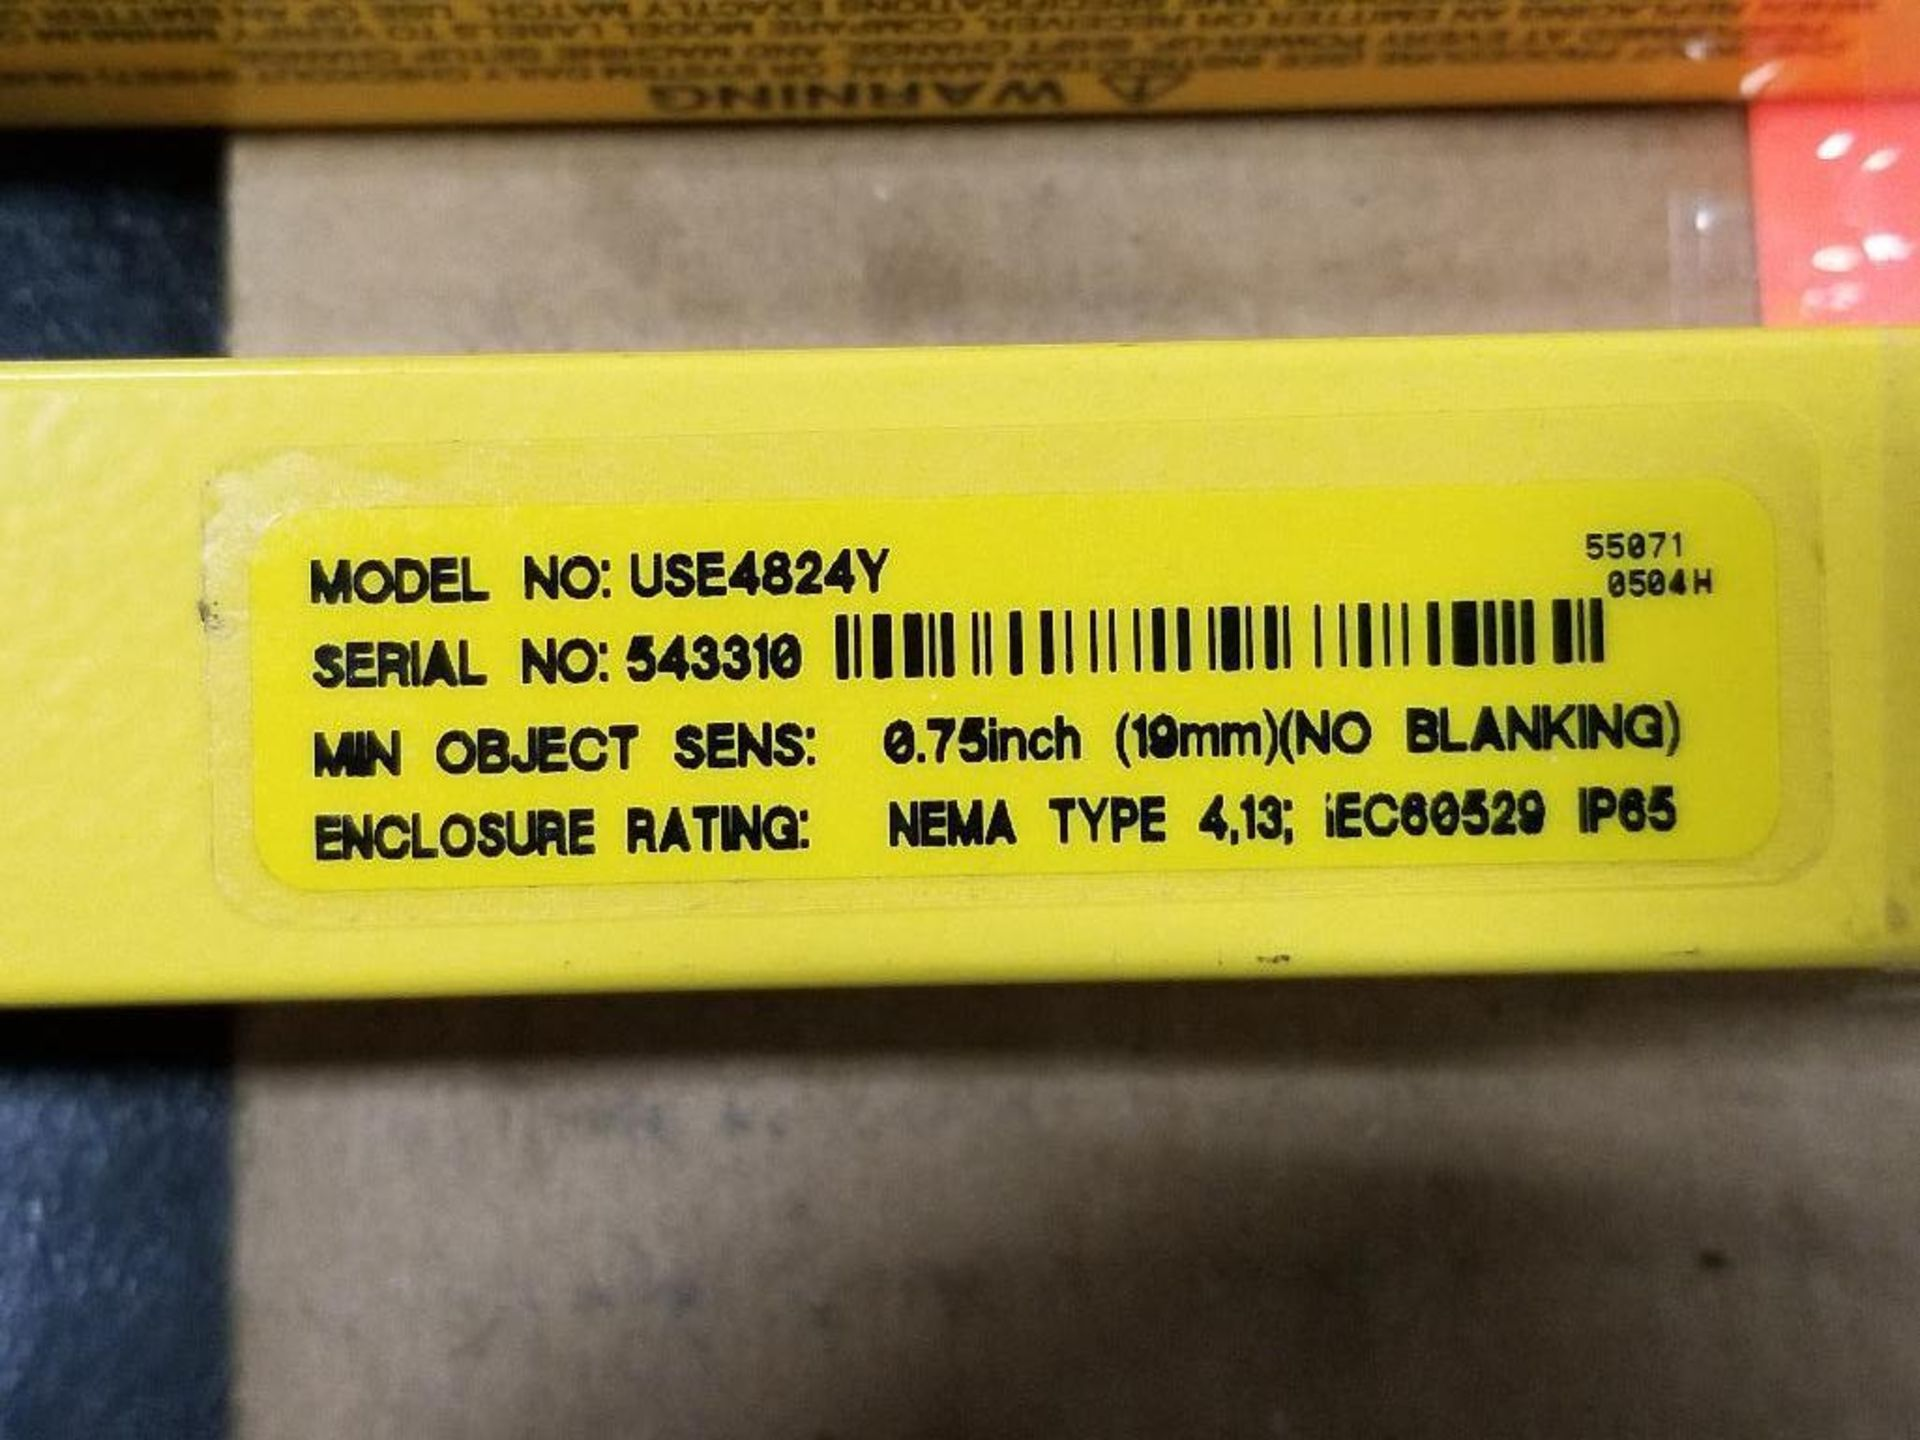 Banner Micro-Screen Light curtain transmitter / receiver set. USR4824Y, USE4824Y. - Image 6 of 6